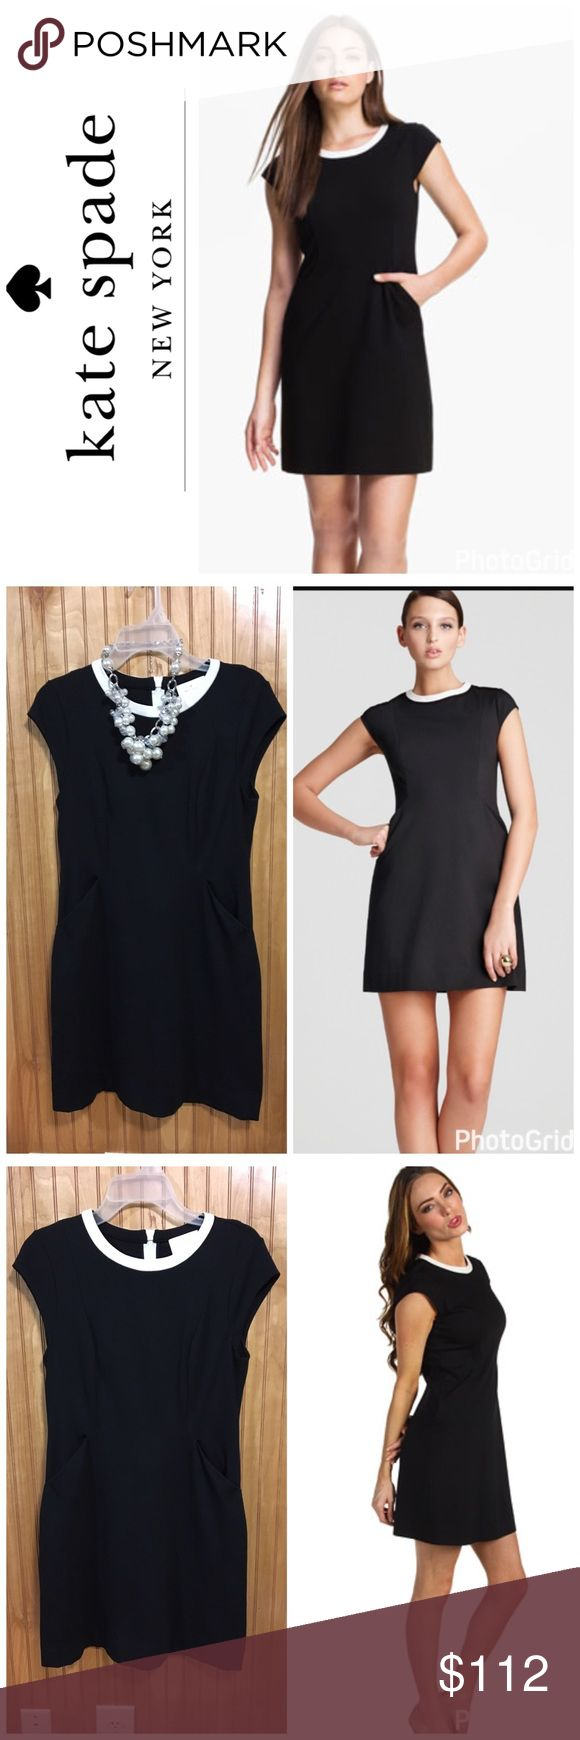 """🆕Kate Spade Little Black Dress Sz 6 Very elegant Kate Spade Little black dress. It has white collar and white zipper up the back. 34"""" in length, bust=33"""", waist=30"""", hip=34"""". Dress has stretch and has an A-line fit. Very classic and perfect for just about any occasion. Worn one time. EUC. Sz 6 kate spade Dresses"""